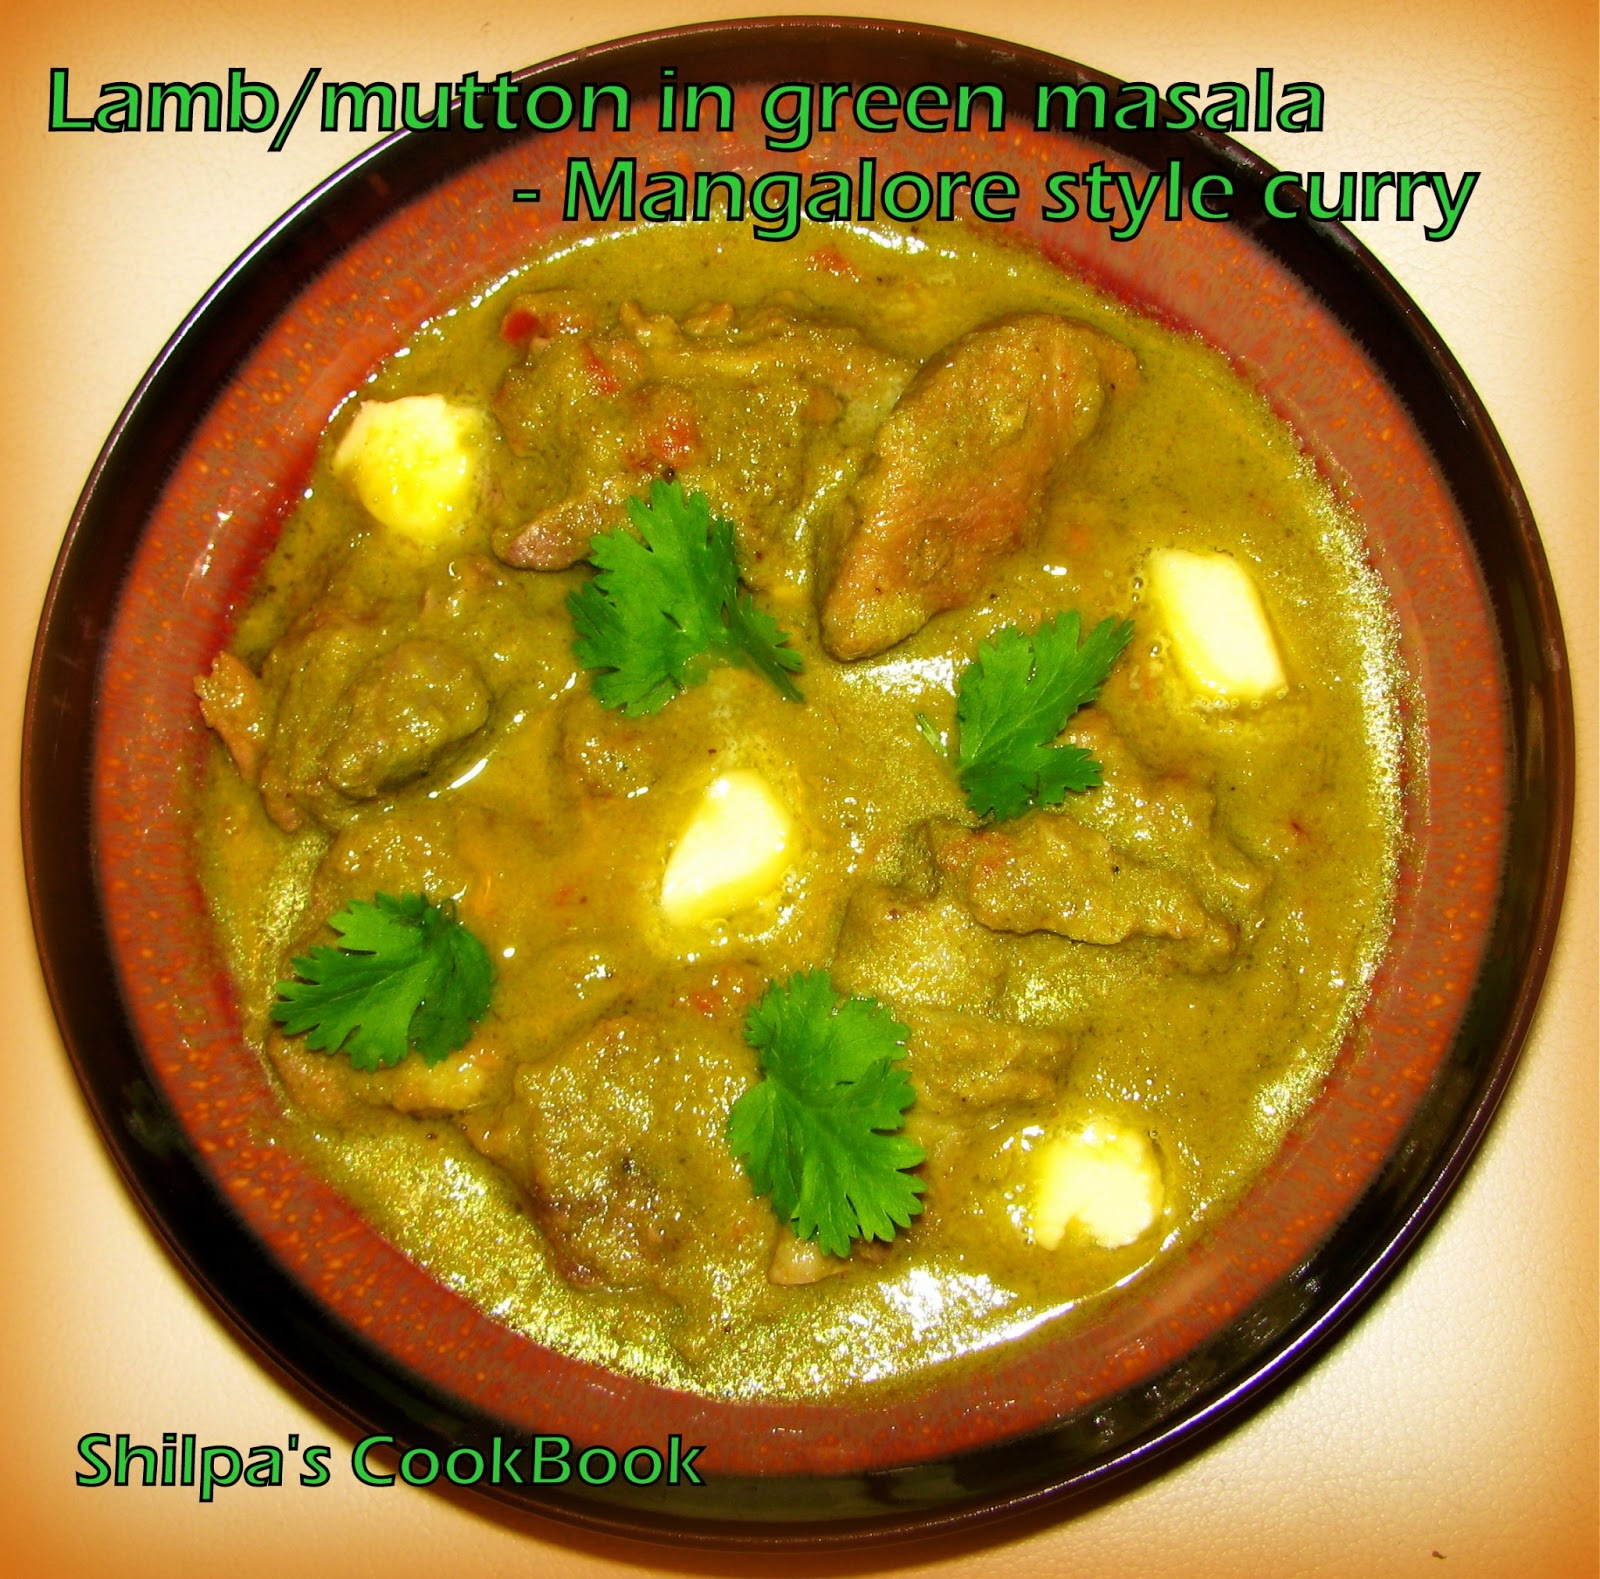 Cook Book: Mutton in Green masala - Mangalore style curry